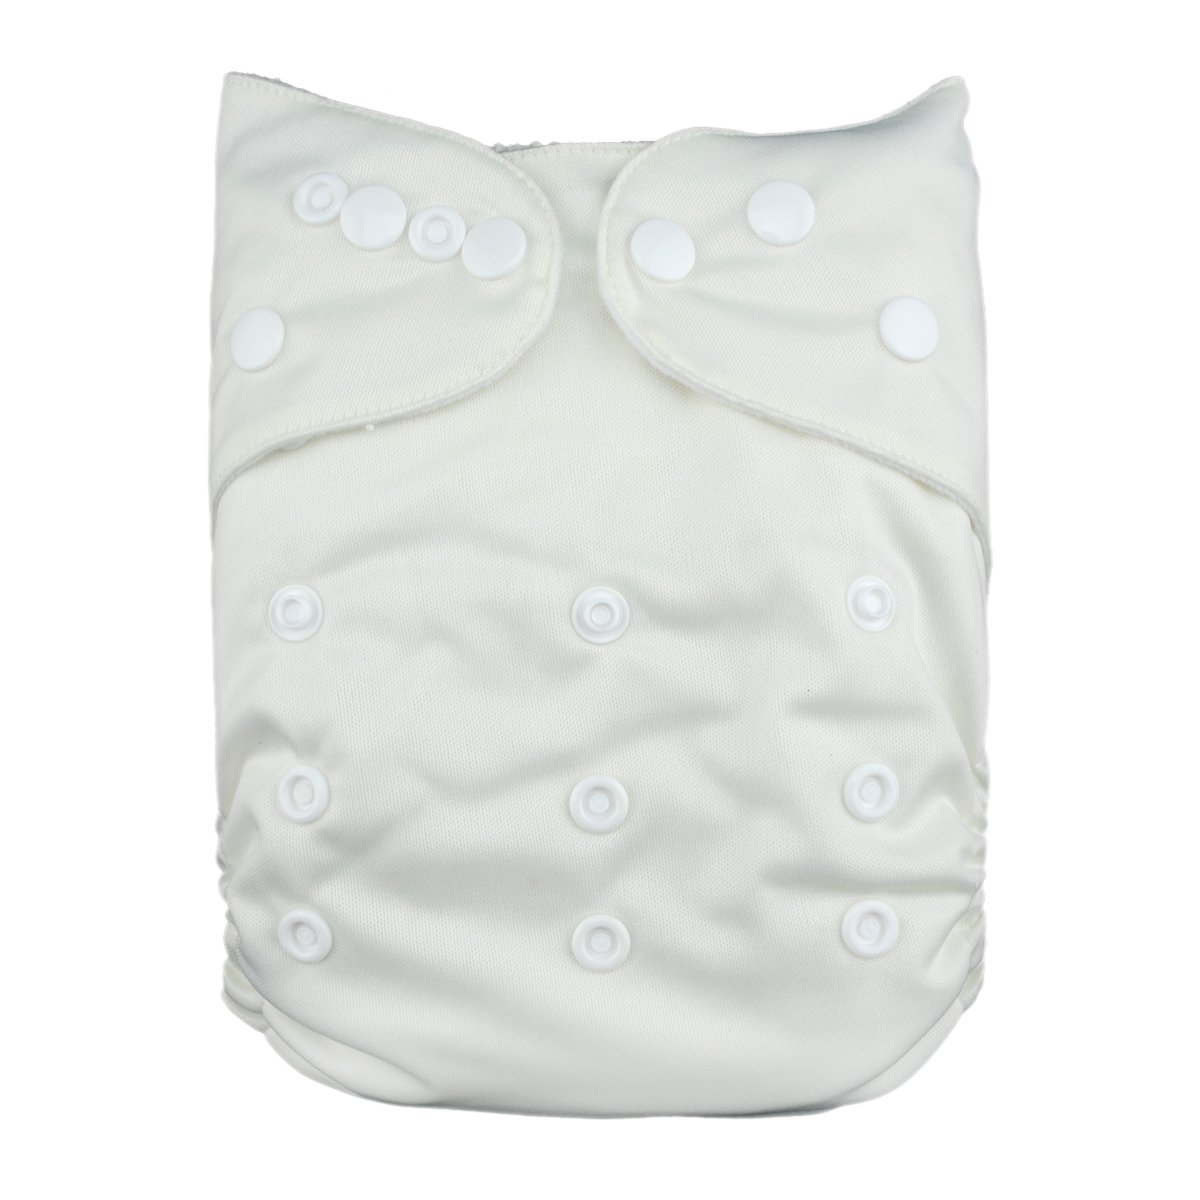 LilBit Washable Adjustable baby Infant Unisex cloth diapers